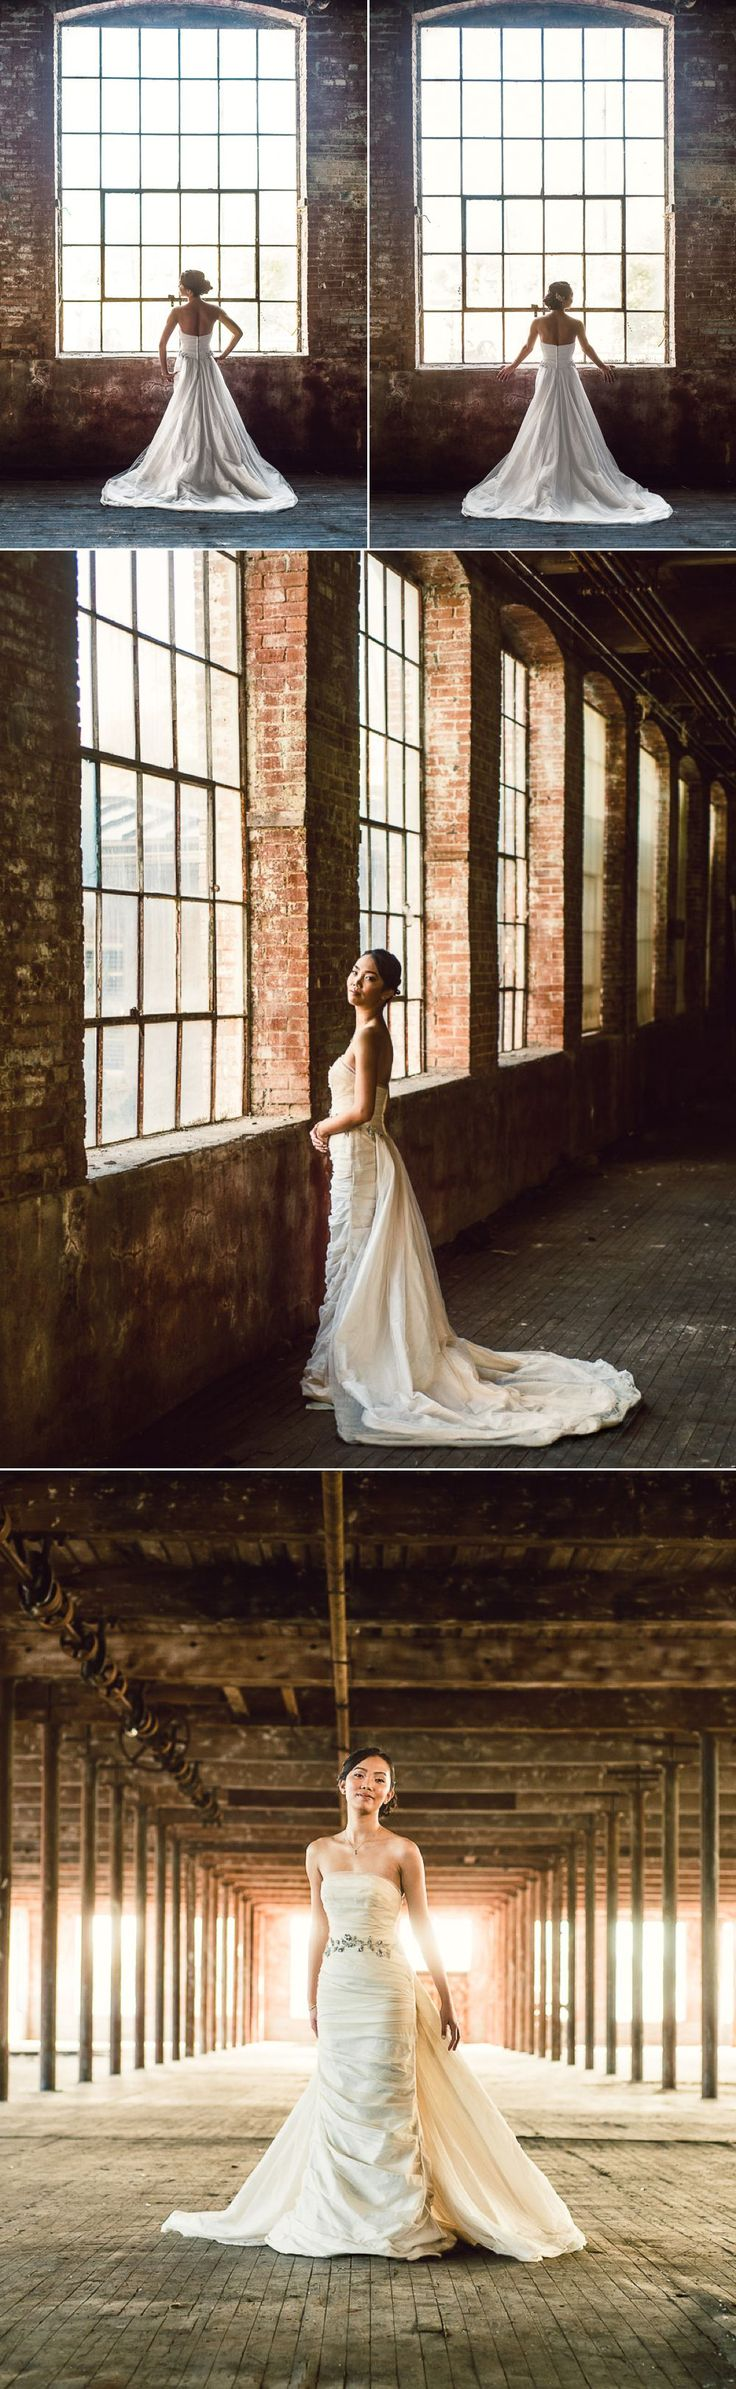 Bridal Portrait, Bridal Inspiration, Dallas, Ft. Worth, Wedding Photographer, McKinney Cotton Mill